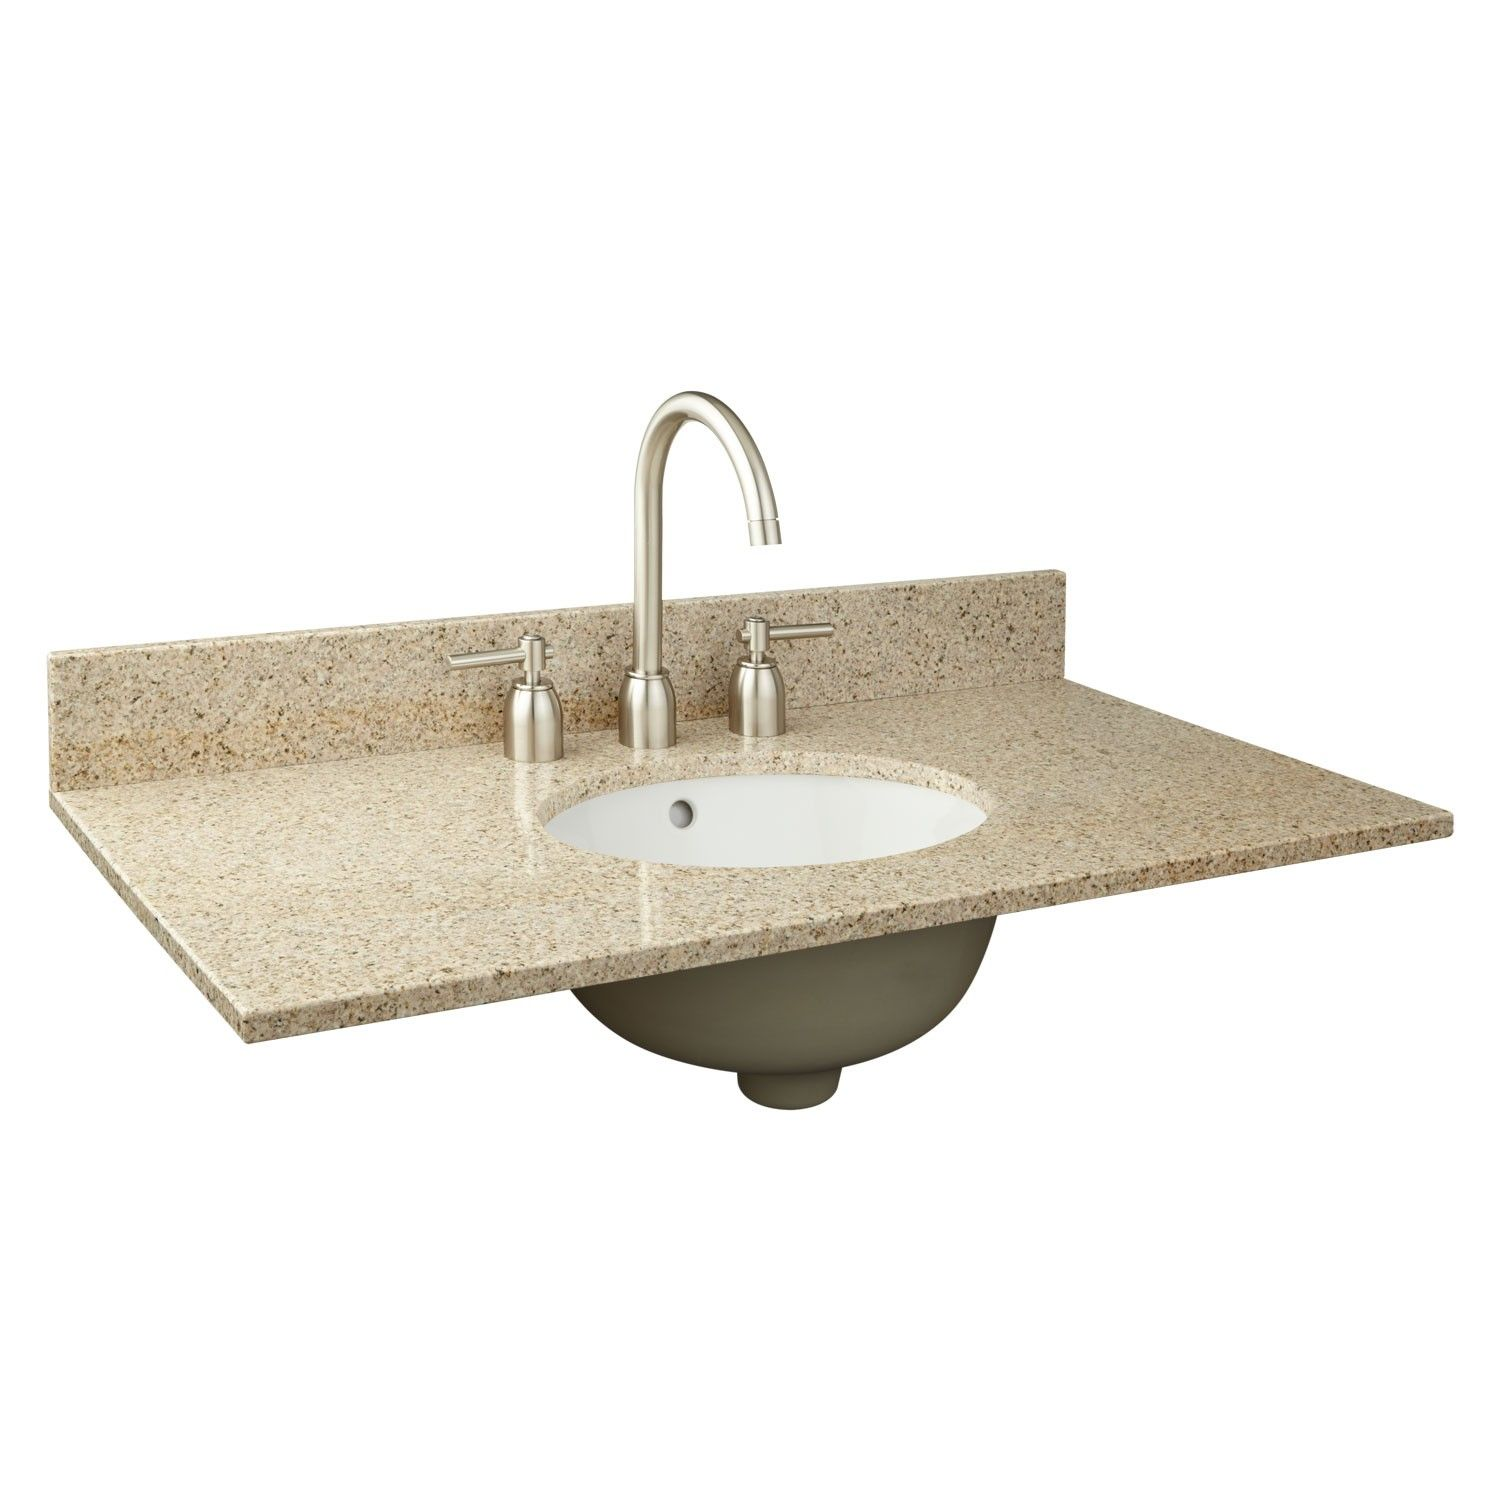 37 X 19 2cm Narrow Depth Granite Vanity Top For Undermount Sink Granite Vanity Tops Undermount Sink Vanity Top